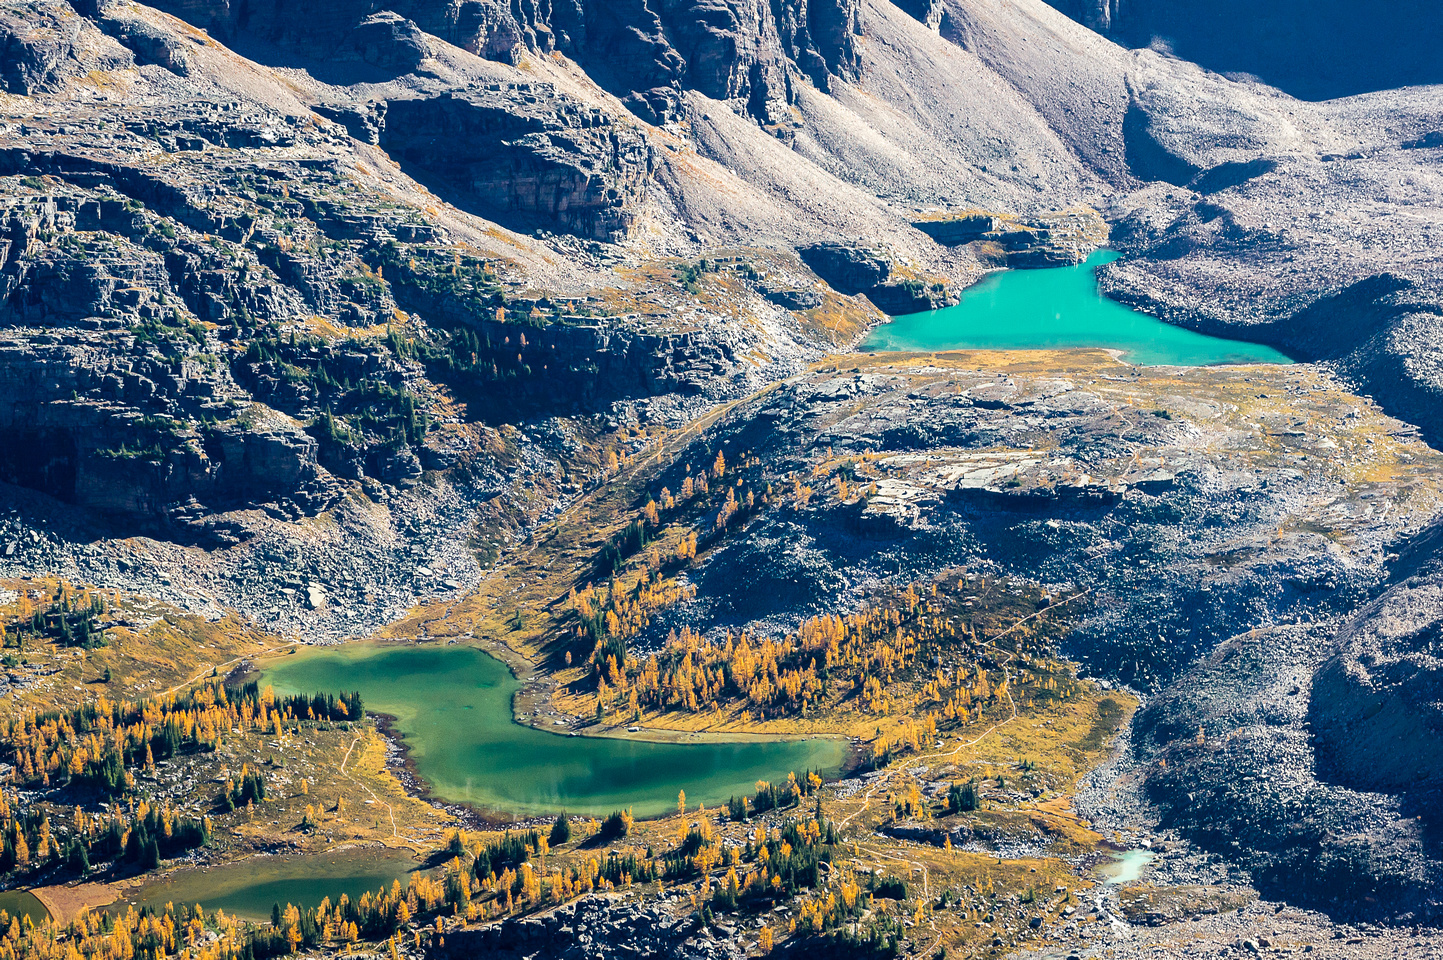 Nature's incredible color scheme in the waters of Hungabee Lake (L) and Opabin Lake (R).